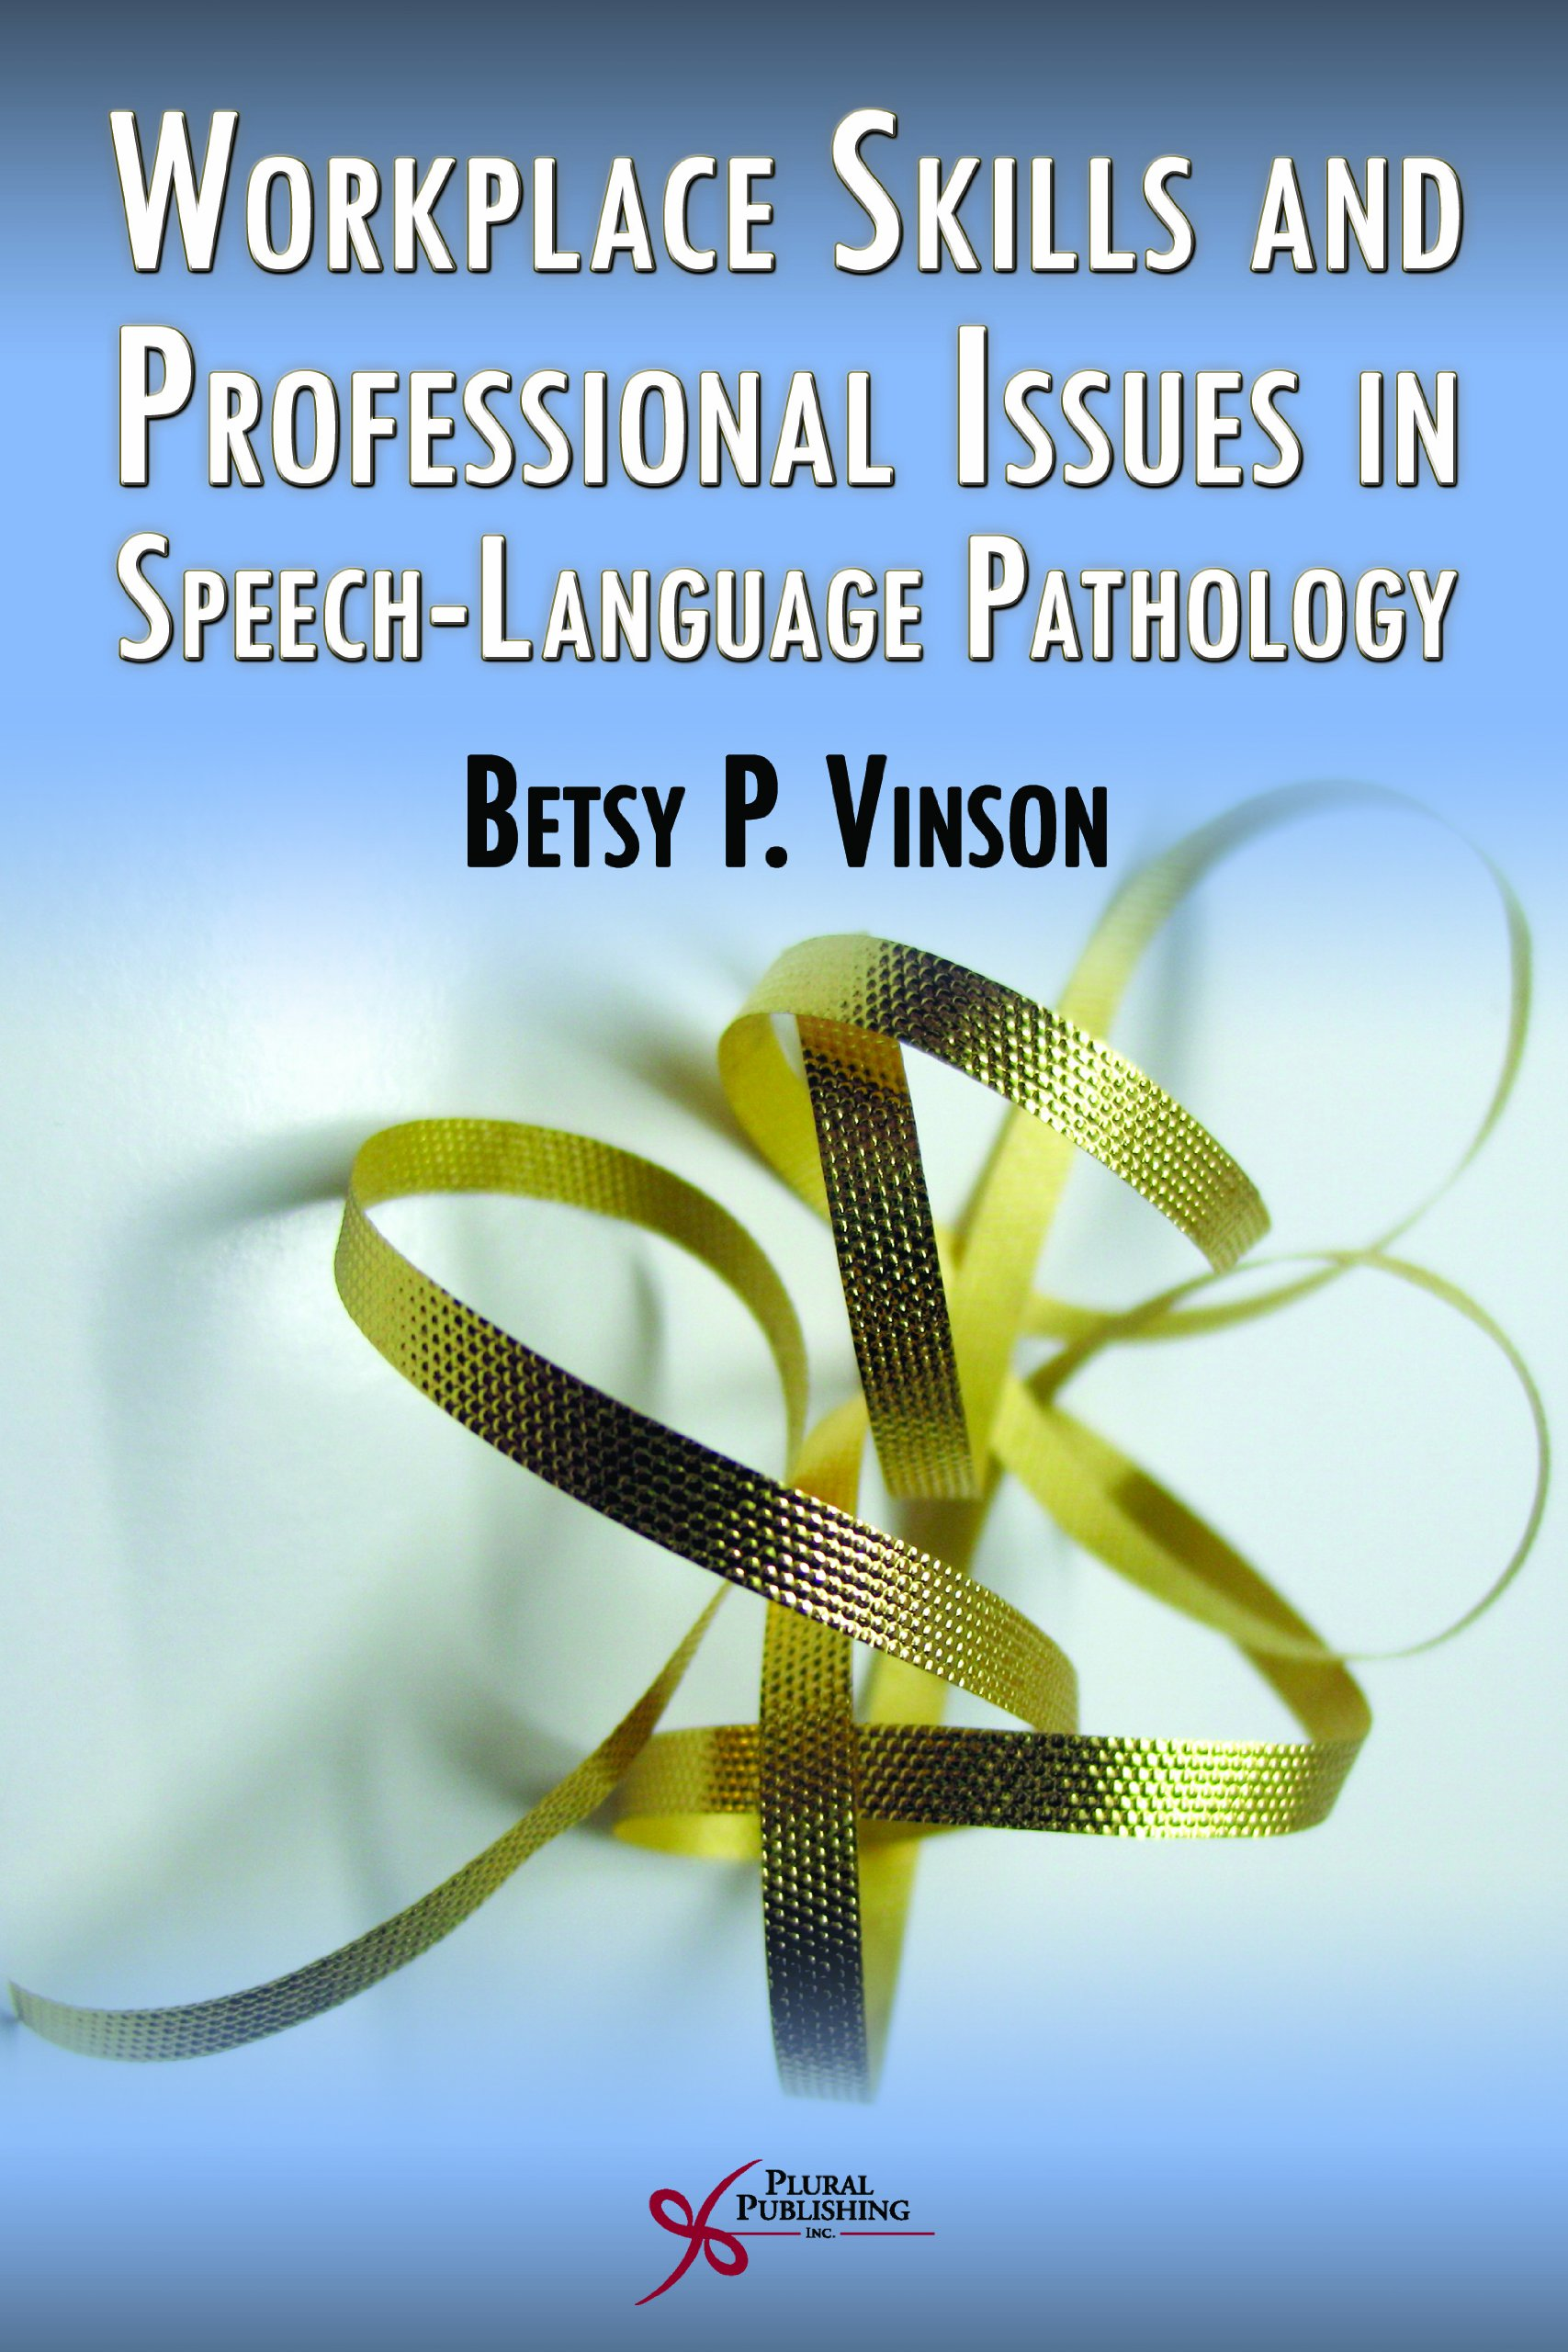 Work-Place Skills and Professional Issues in Speech-Language Pathology by Brand: Plural Publishing Inc